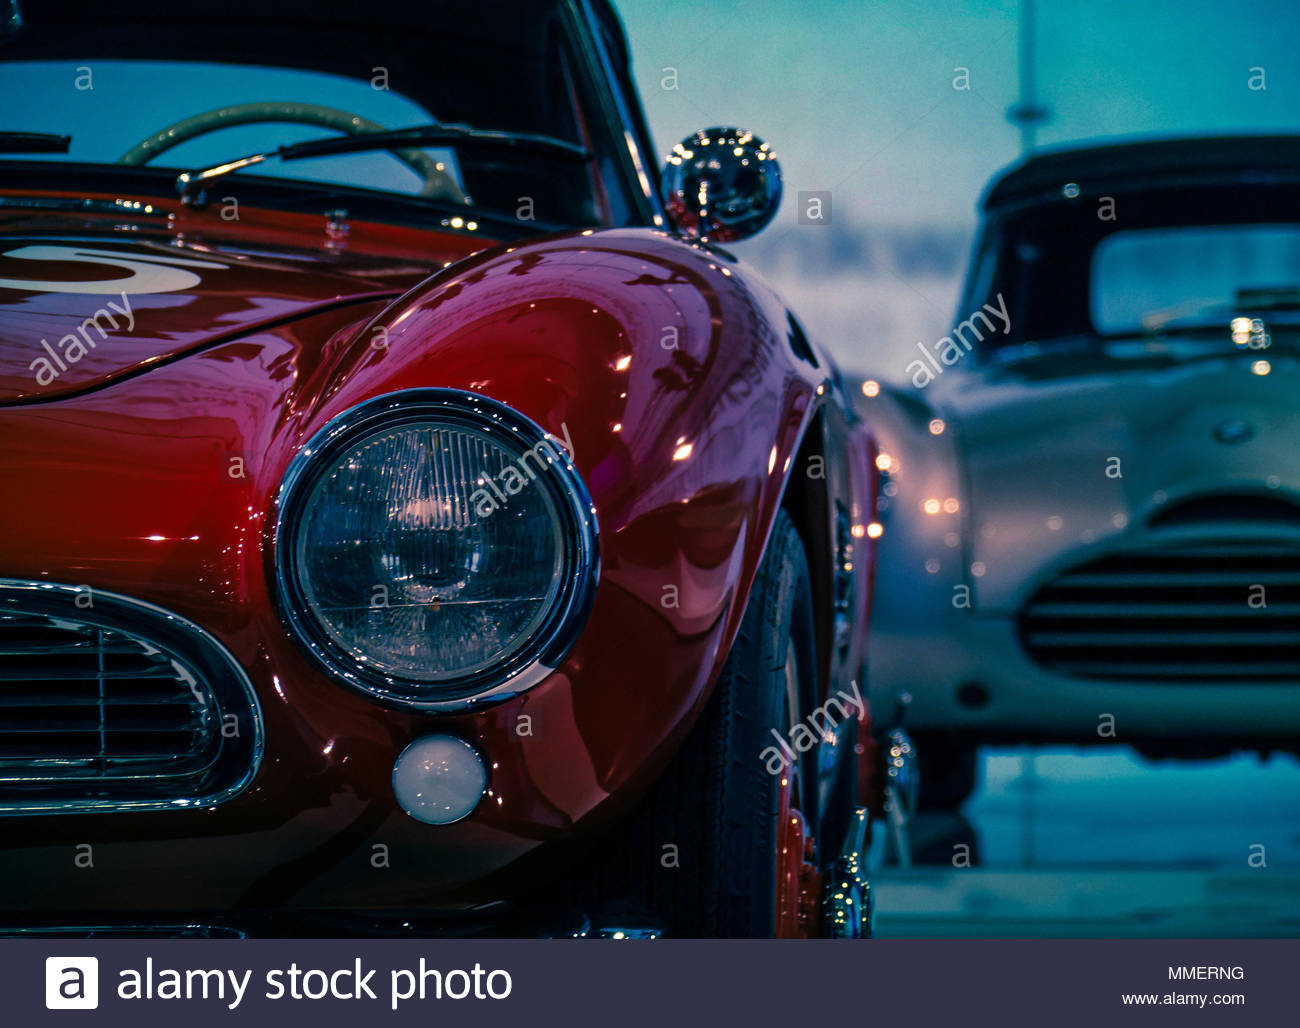 BMW oldtimers in the museum. - Stock Image